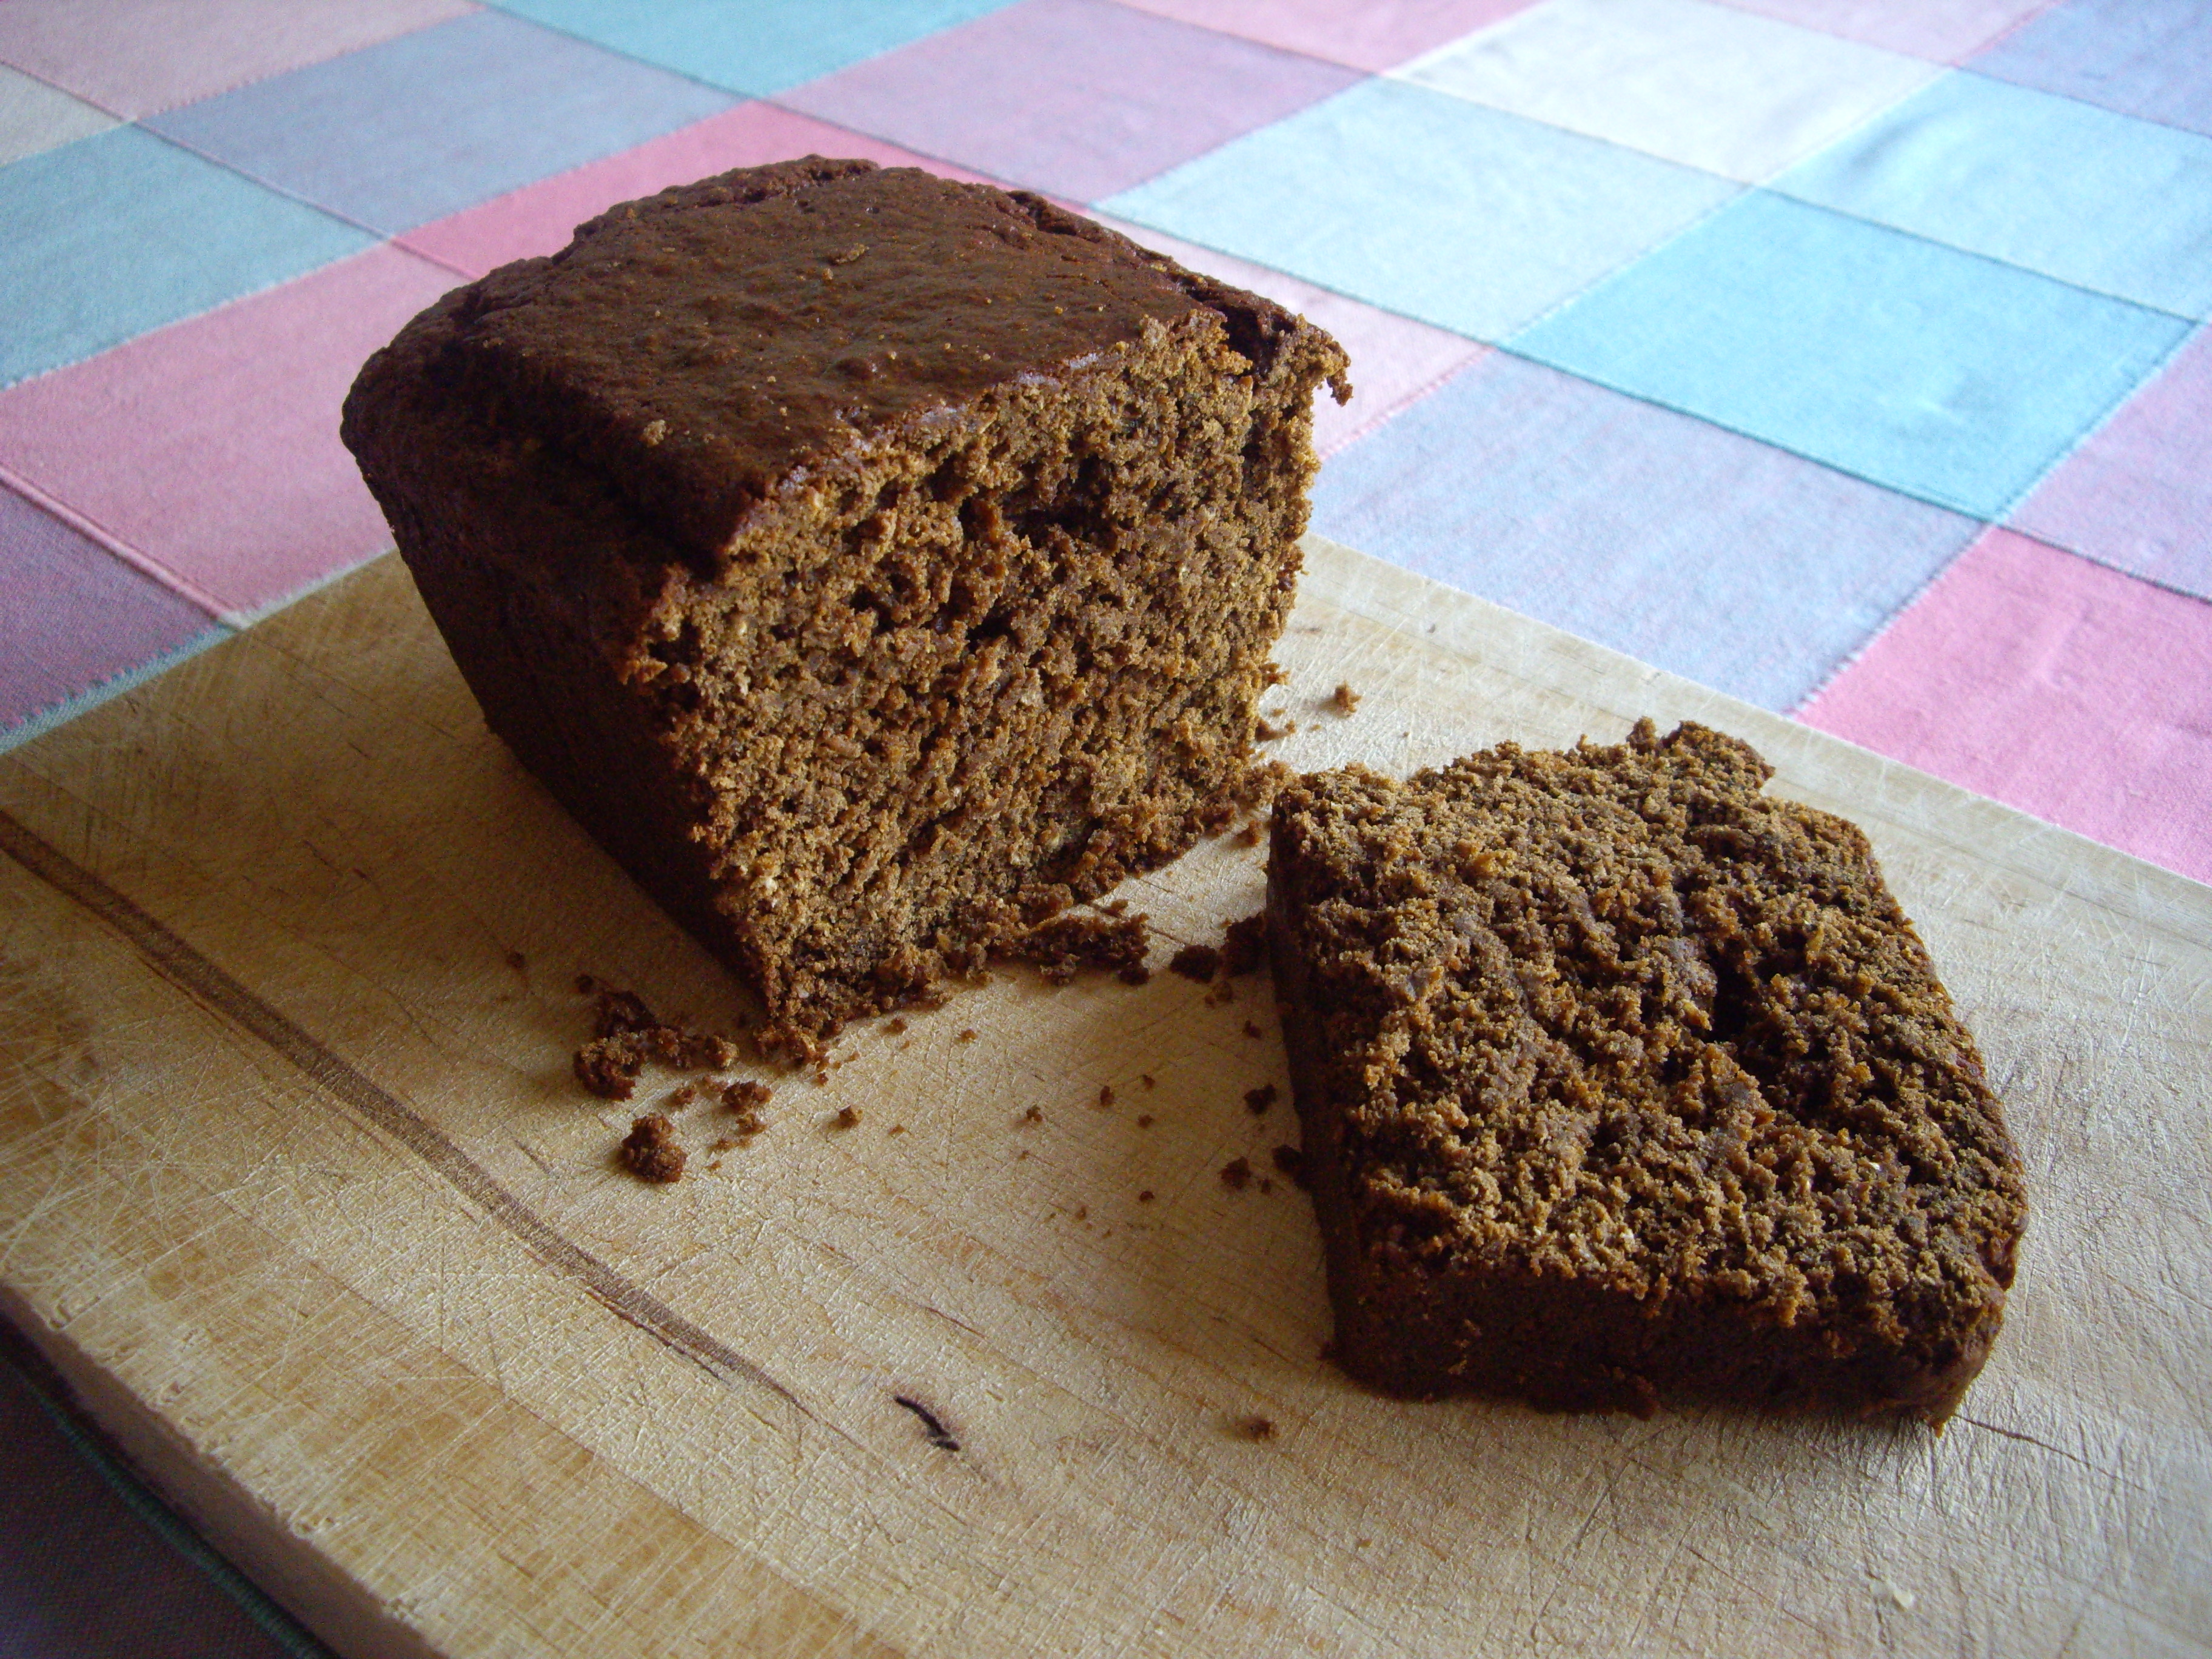 There's just enough of the Yorkshire Parkin left for this photo...it's so yummy that it disappears very quickly!